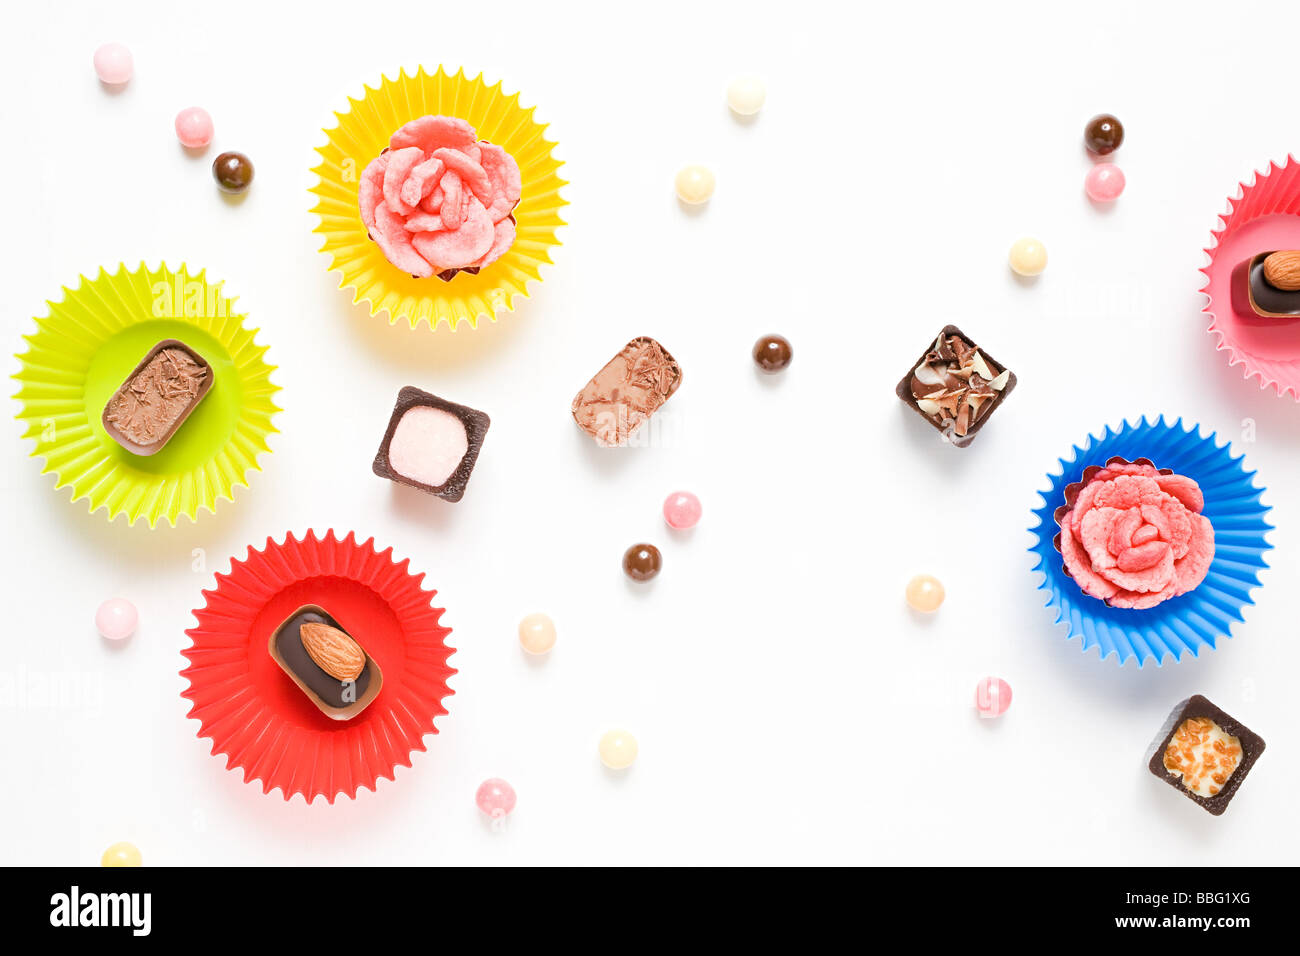 Chocolates and candies - Stock Image